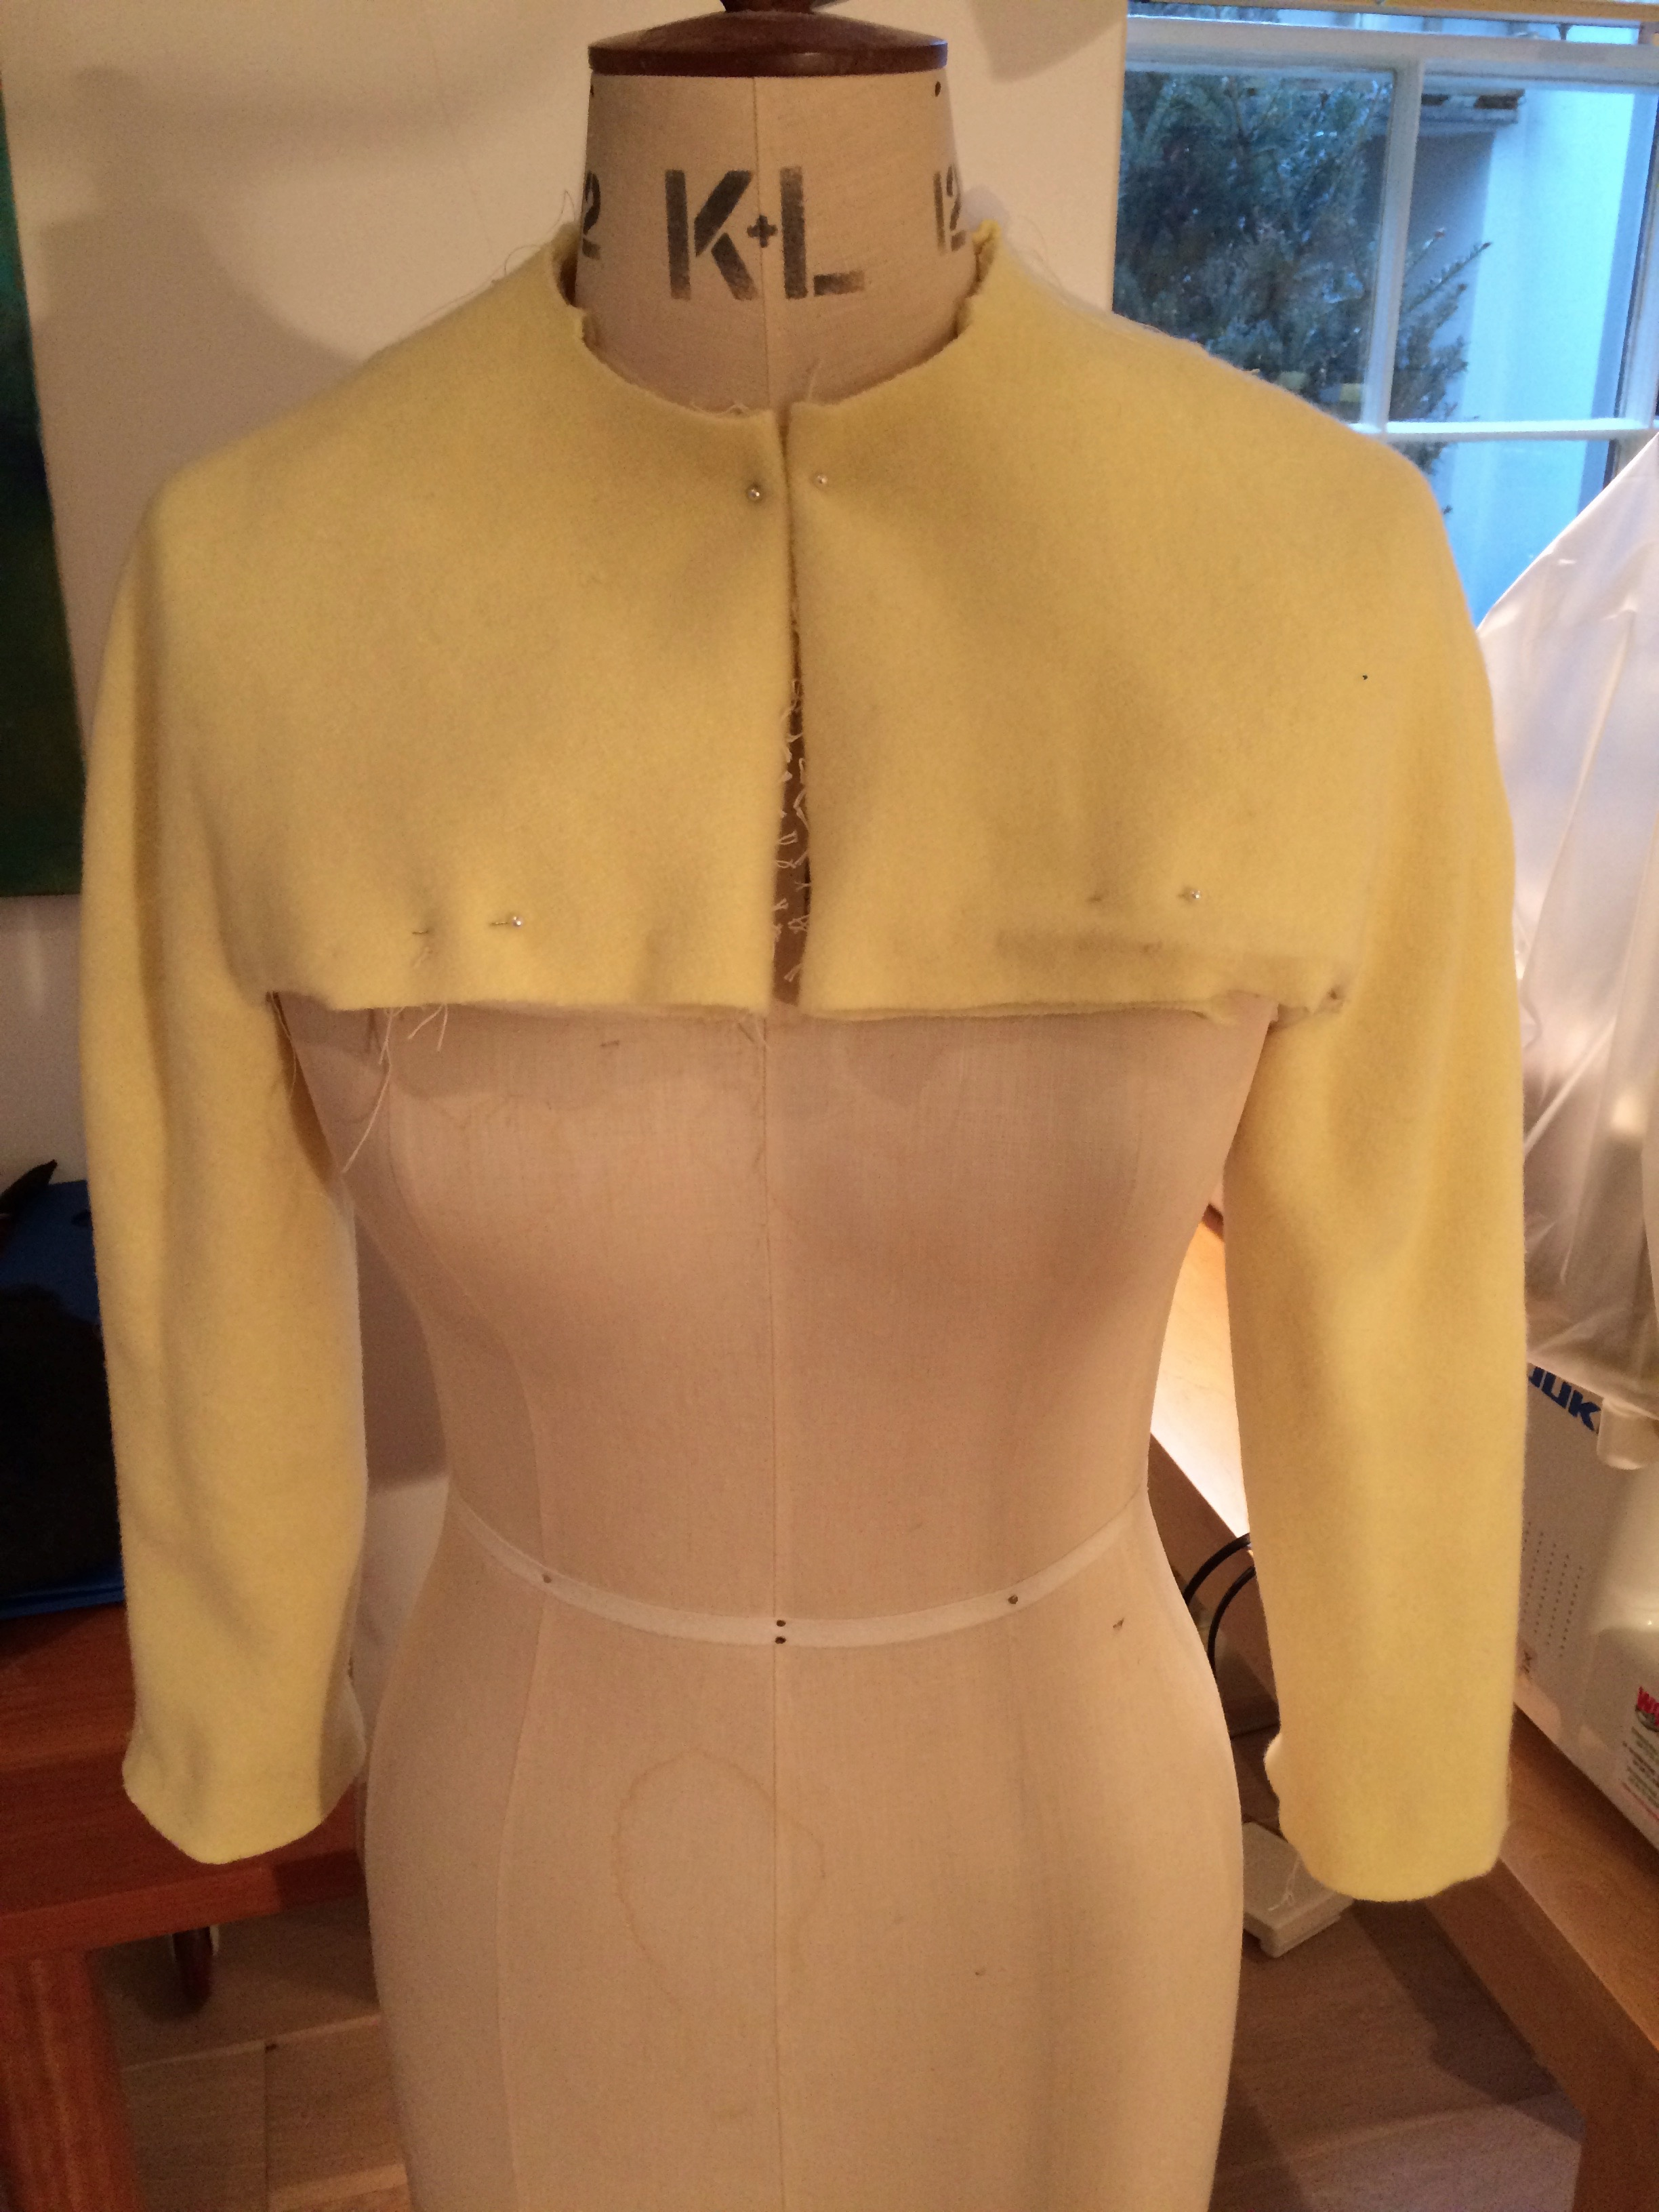 Sleeve and front bodice